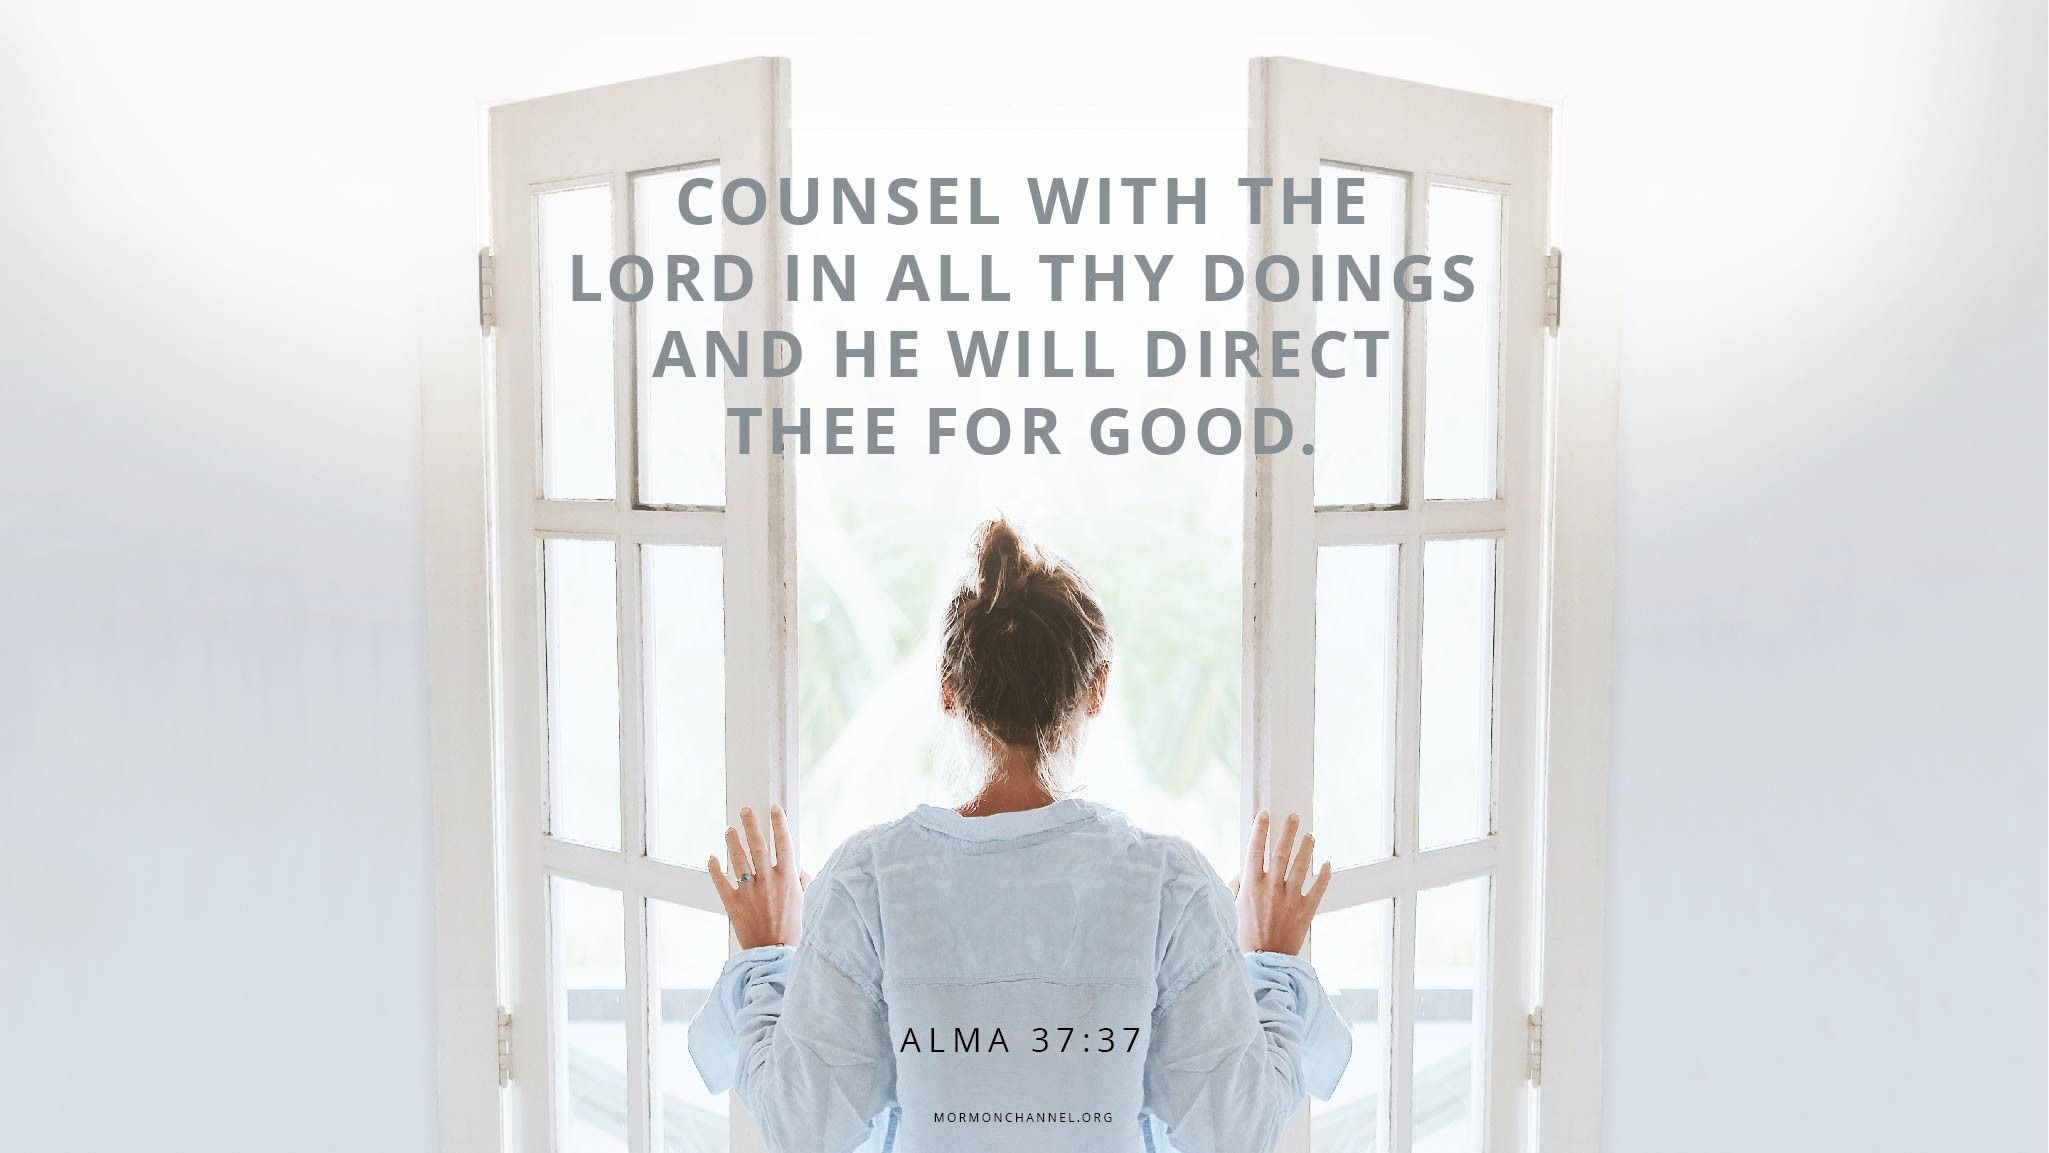 """""""Counsel with the Lord in all thy doings, and he will direct thee for good.""""—Alma 37:37"""